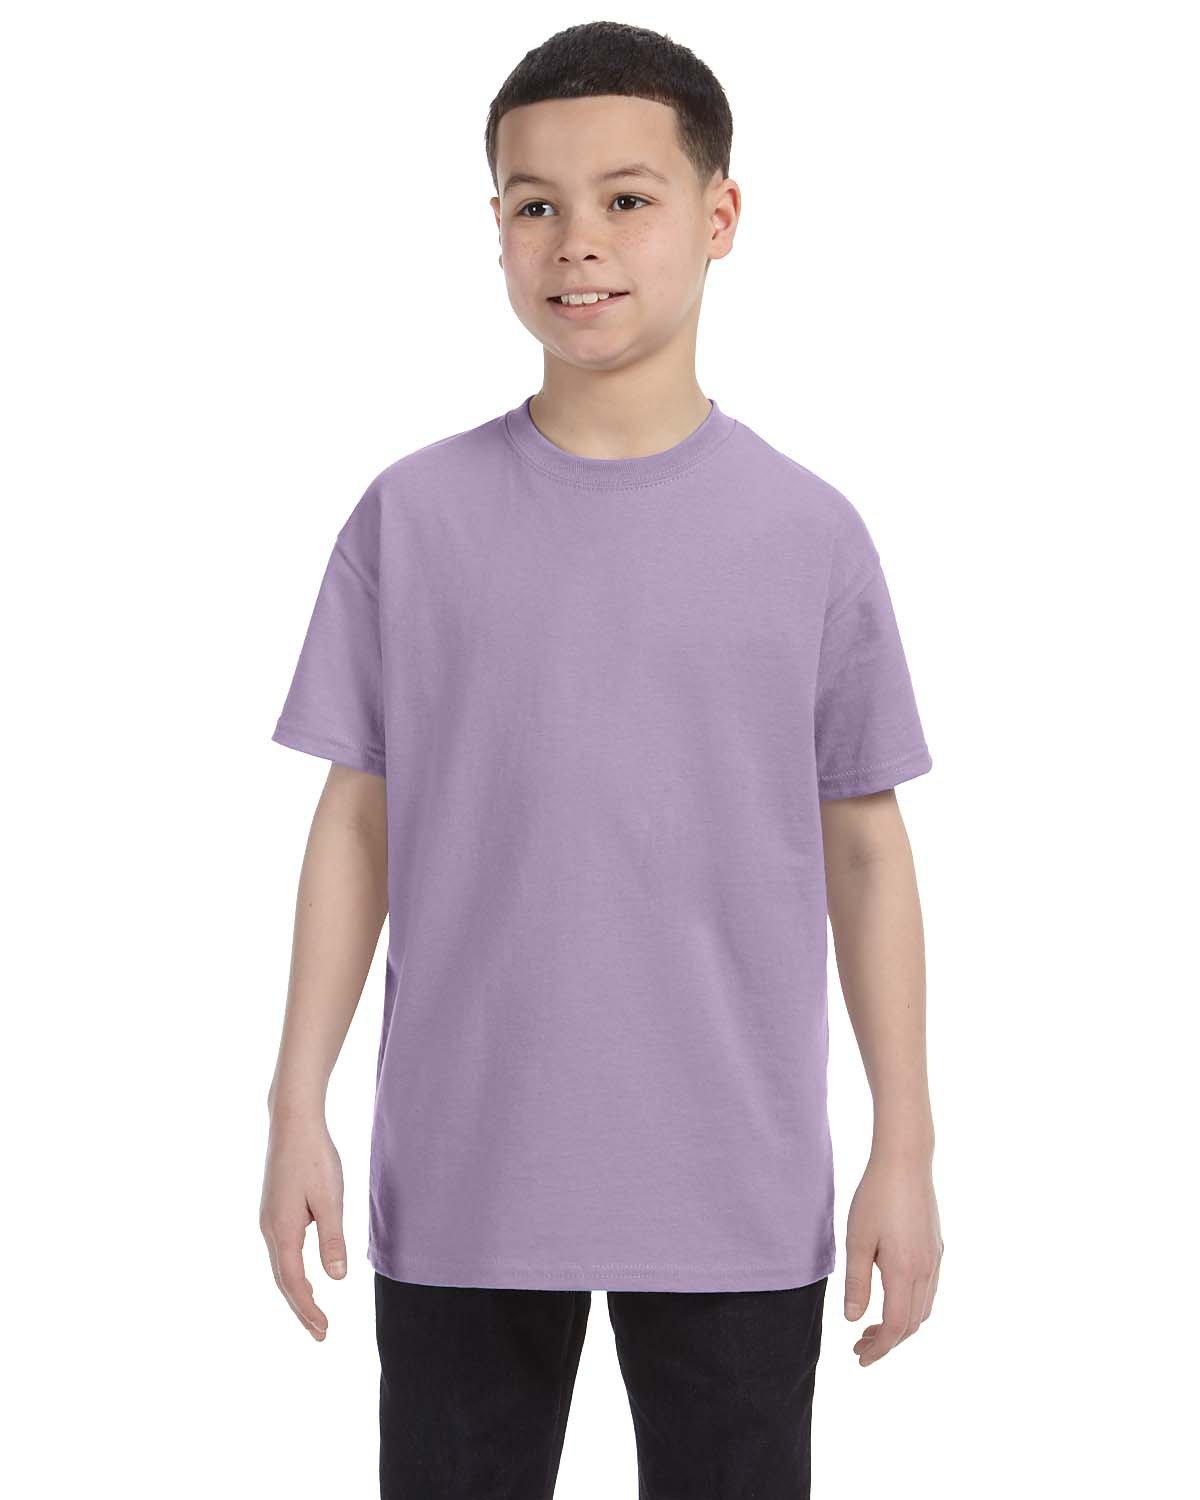 Hanes Youth Authentic-T T-Shirt LAVENDER